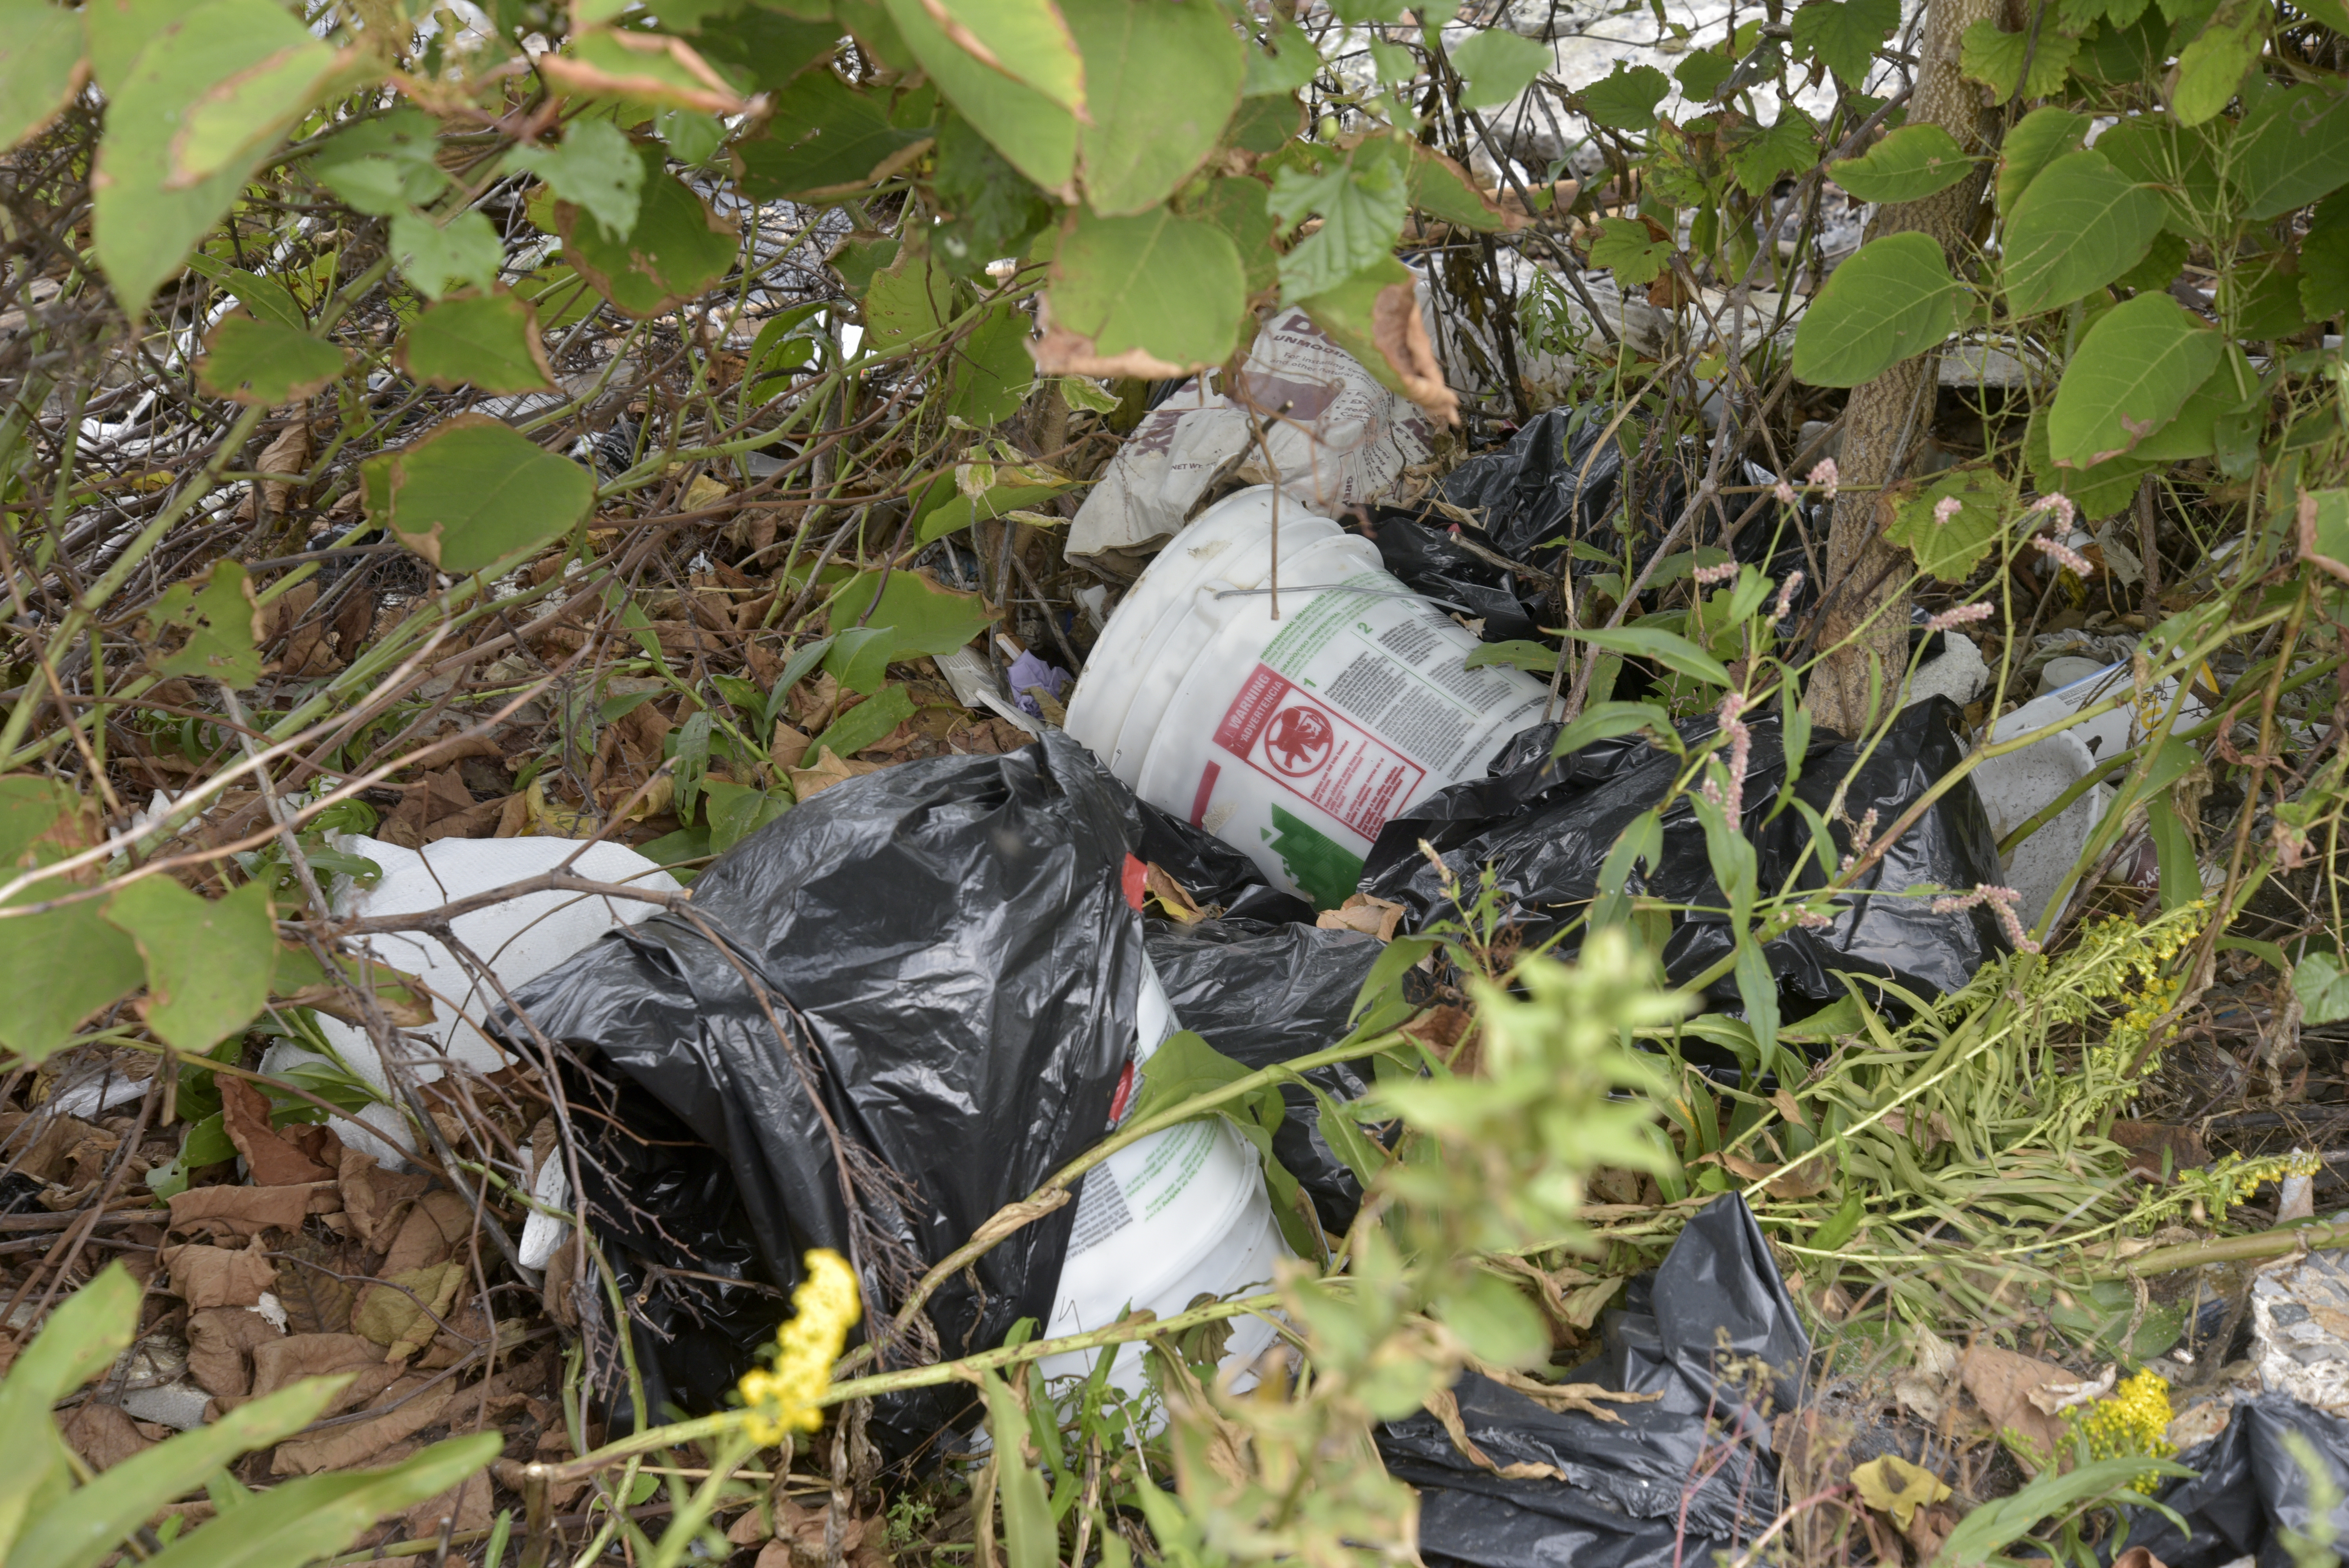 New Alabama law increases penalties for littering; $500 fine for tossing cigarettes, urine